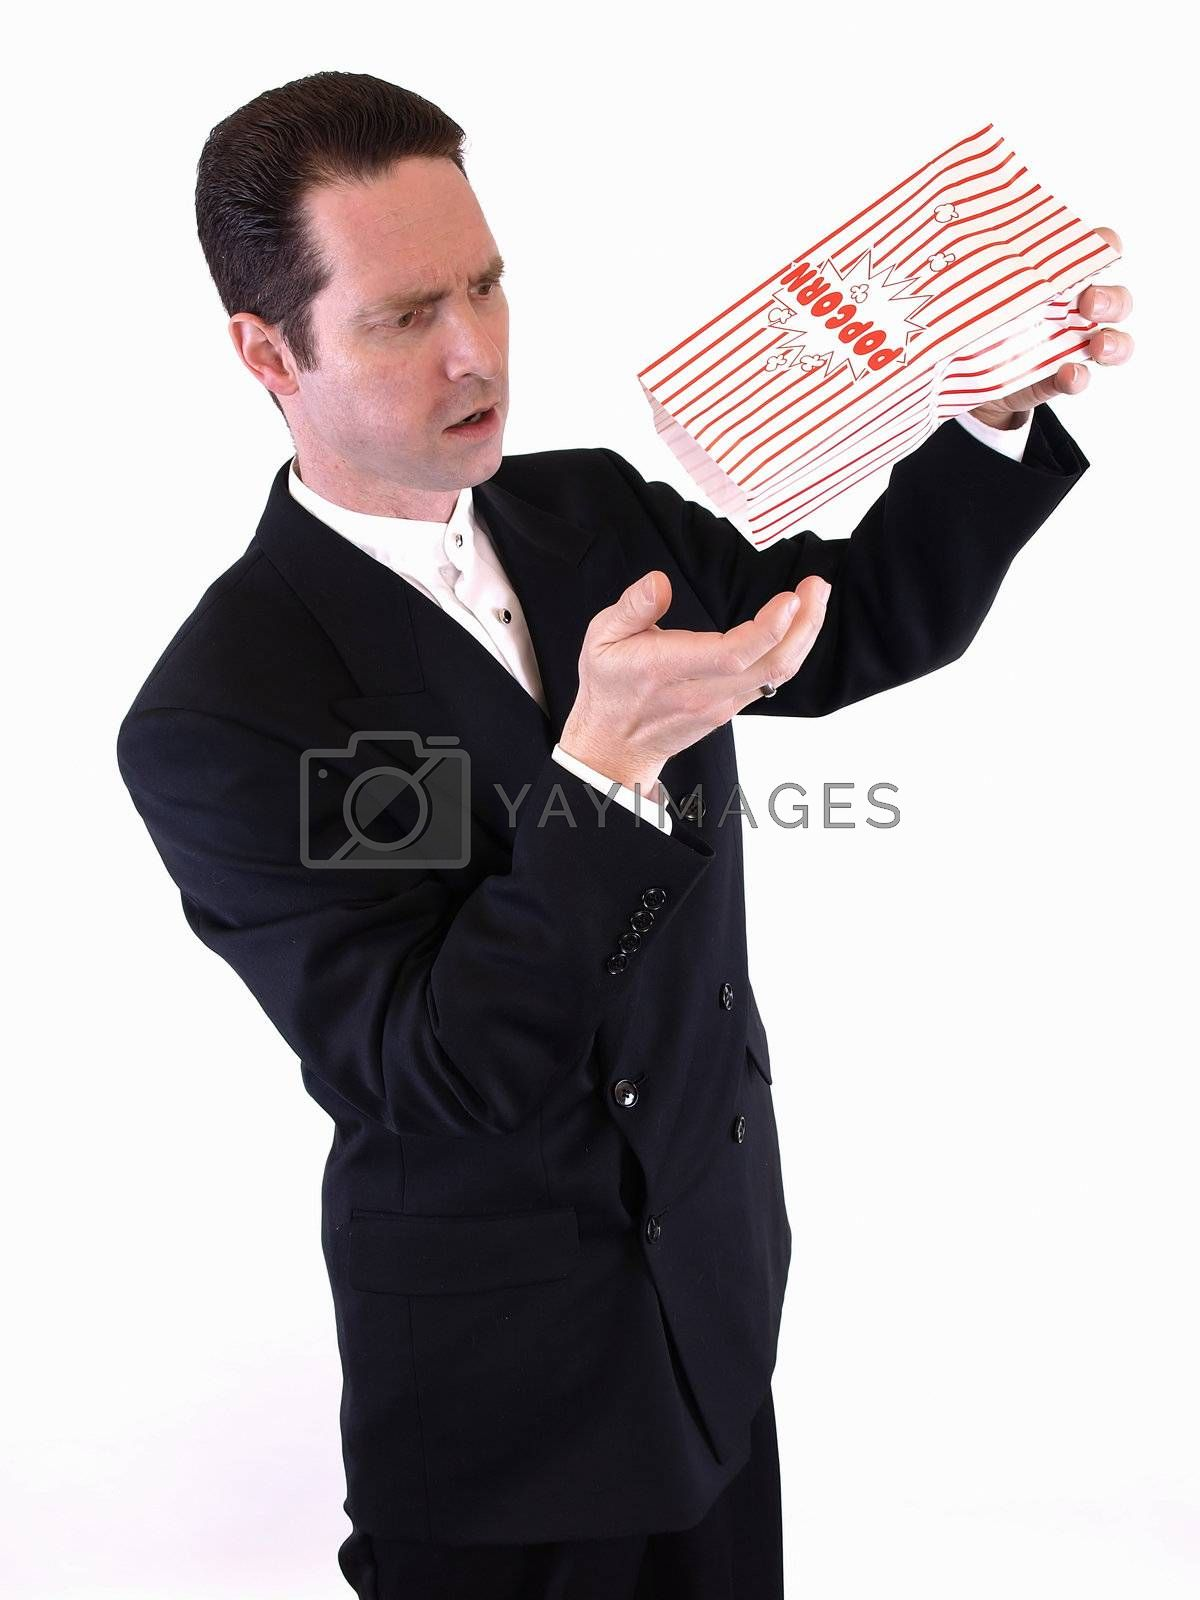 A white male in a suit shakes a bag of popcorn into his hand.  He is frustrated because there is no more.